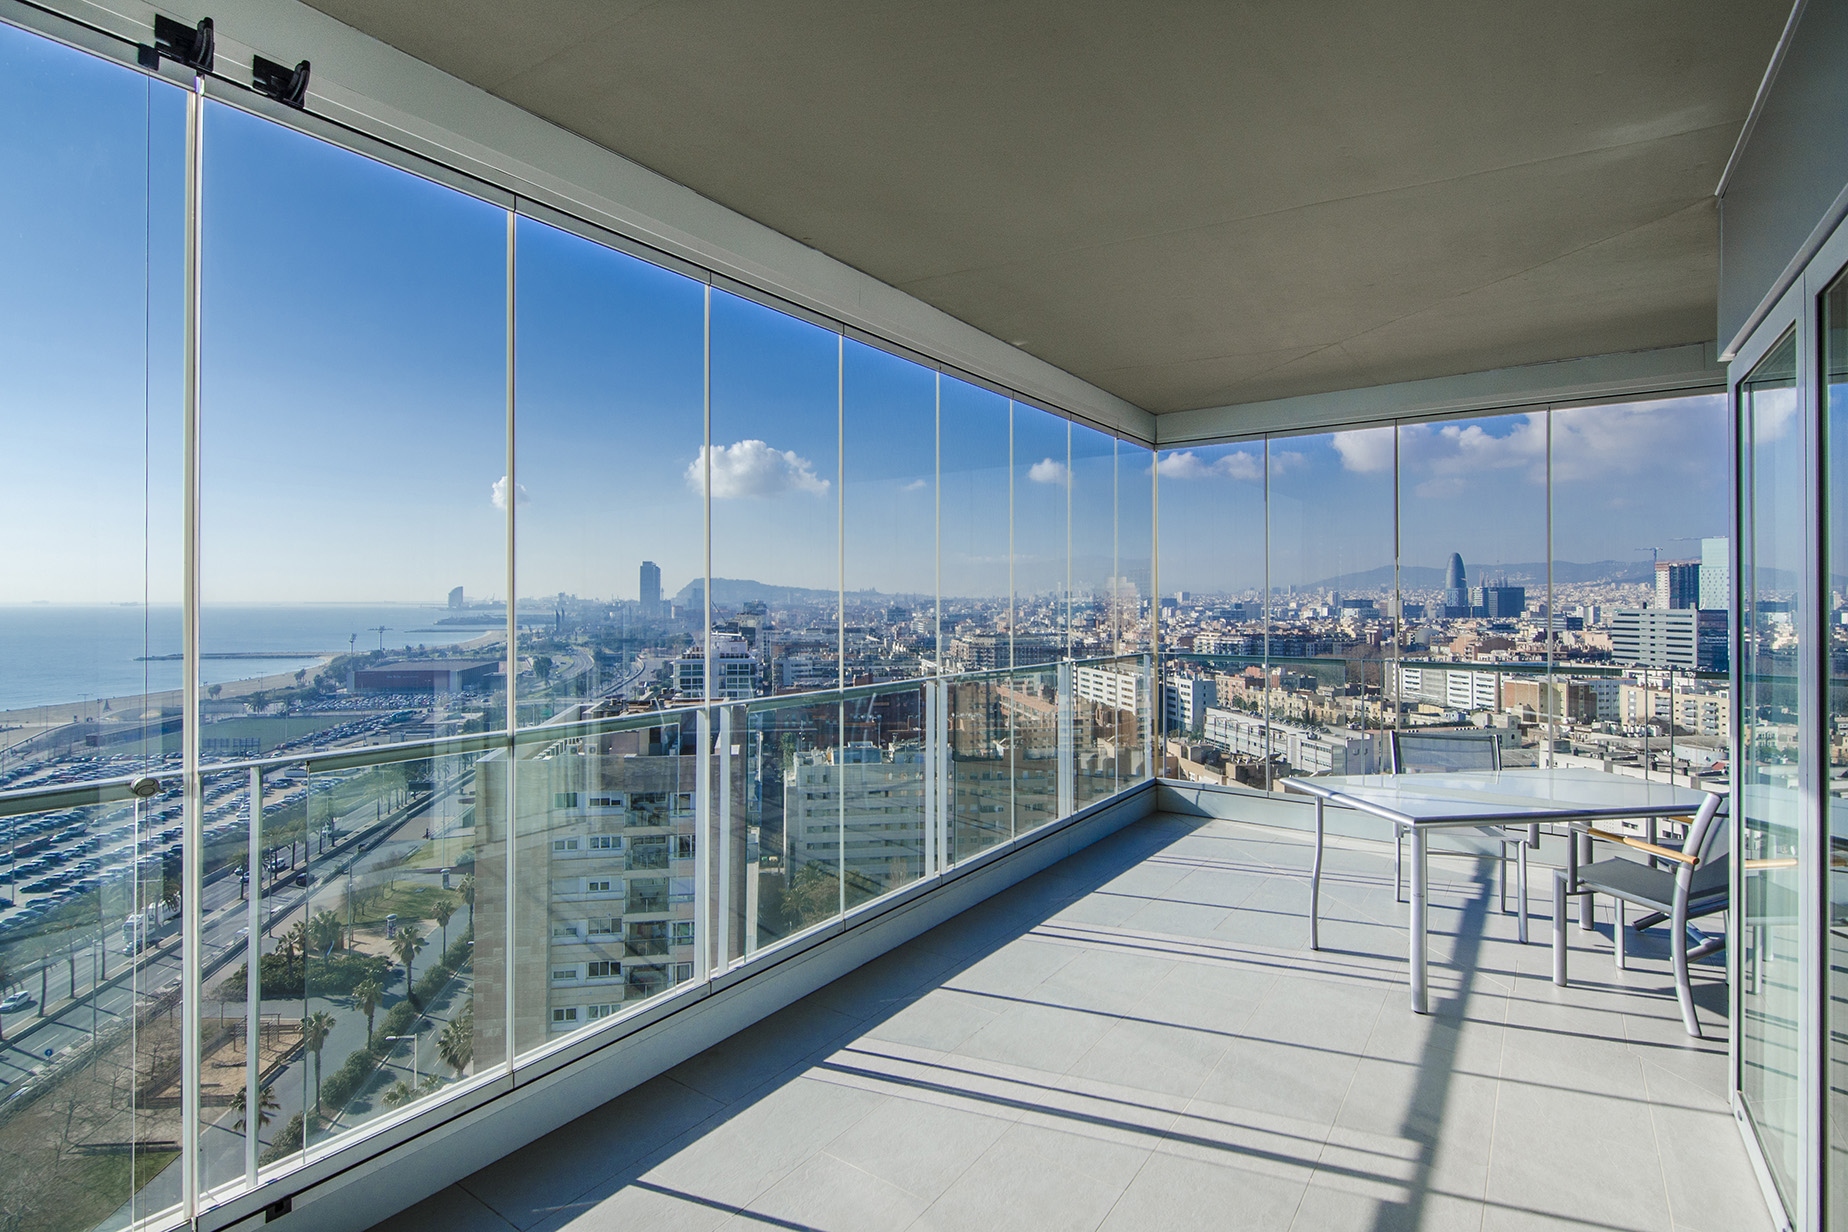 Apartment for Sale at Stunning apartment on the sea in Diagonal Mar, Barcelona Diagonal Mar, Barcelona City, Barcelona, 08019 Spain